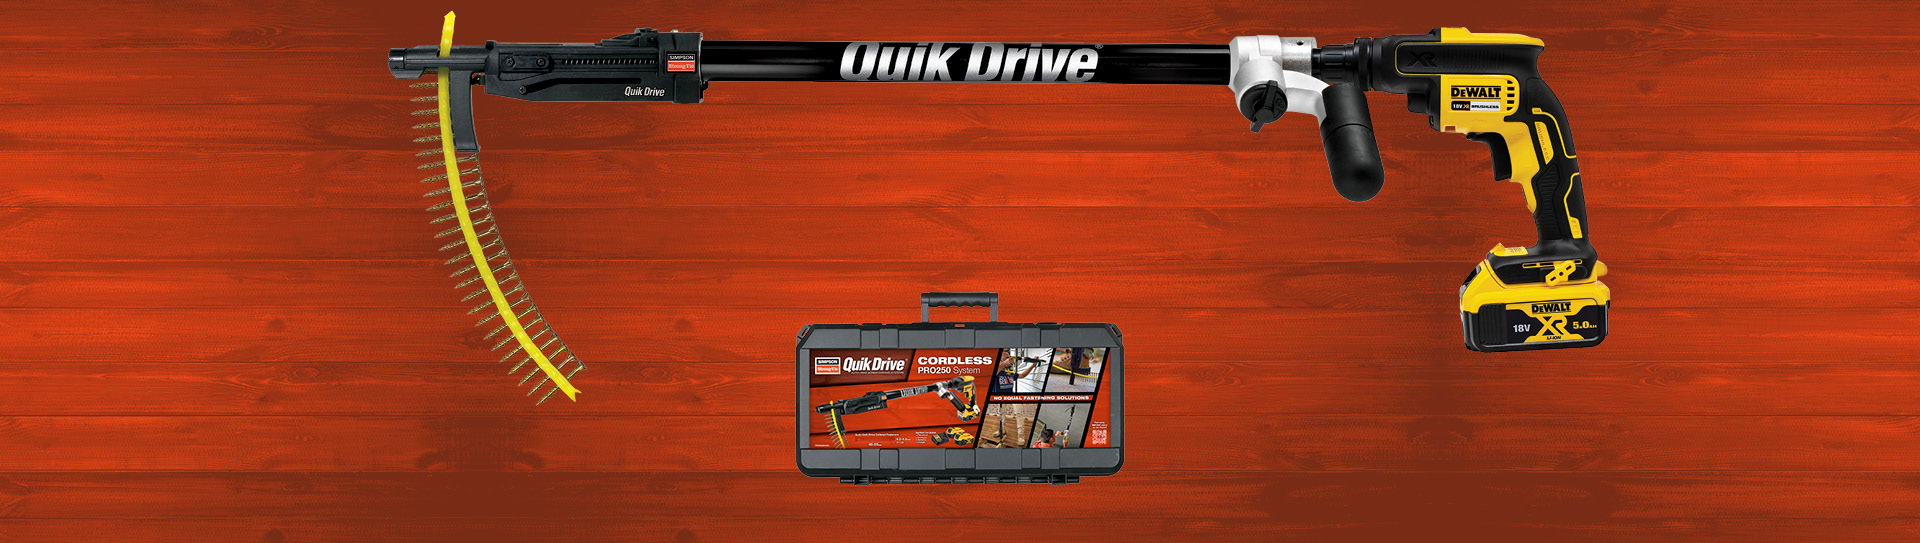 QuikDrive® CORDLESS PRO250 Auto-Feed Screw Driving System